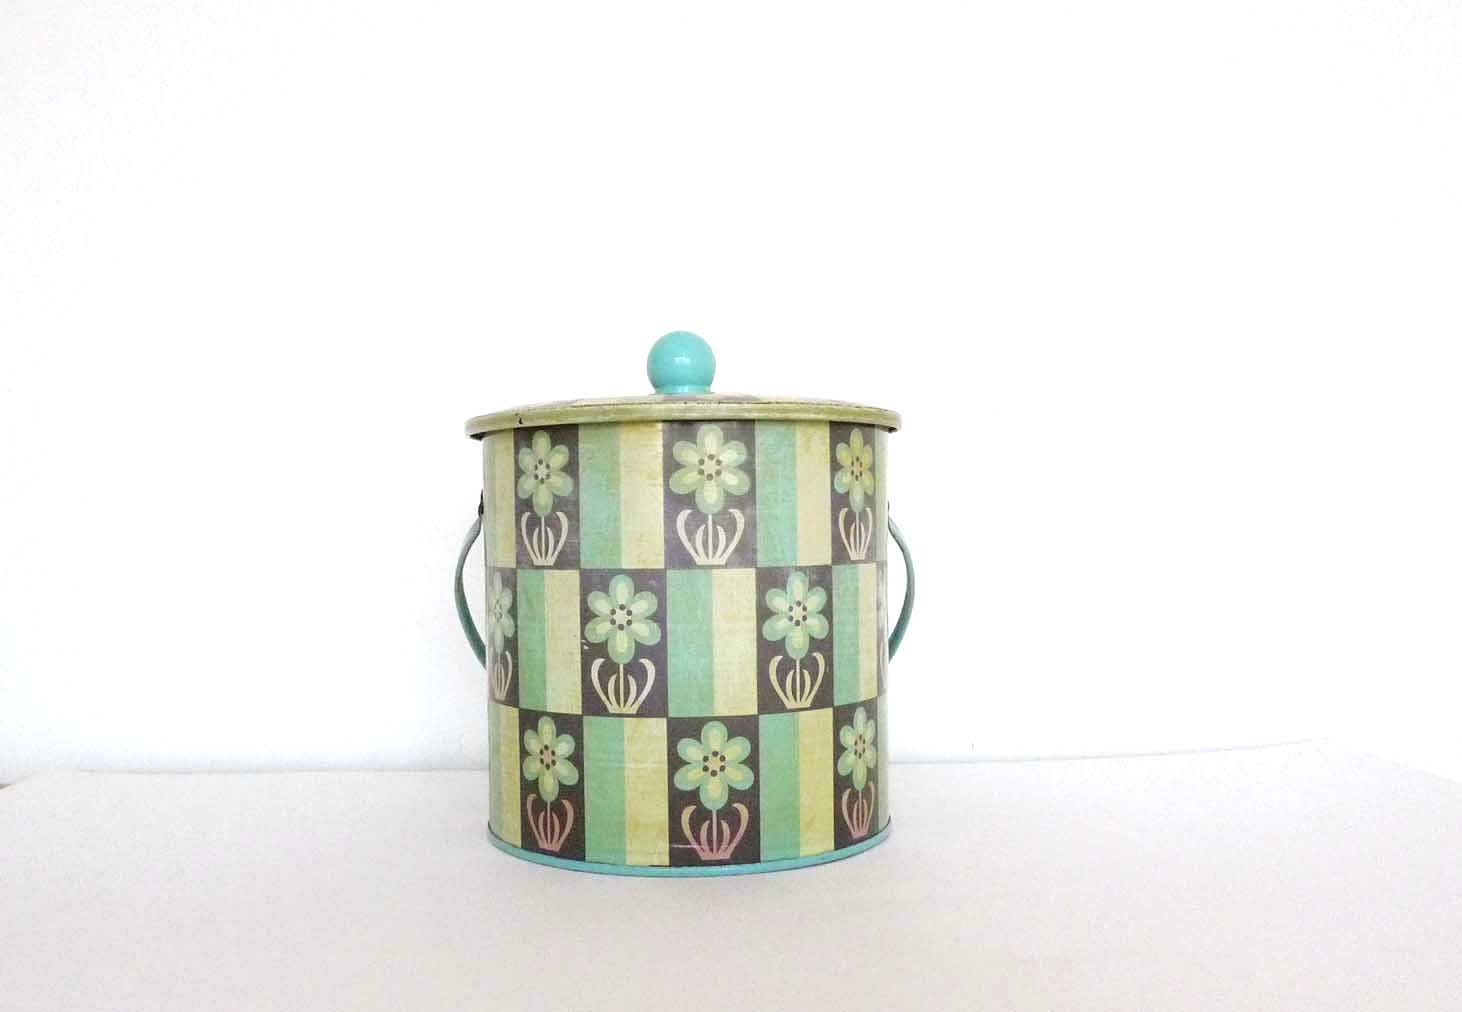 Vintage Biscuit Tin Turqouise and blue flower pattern